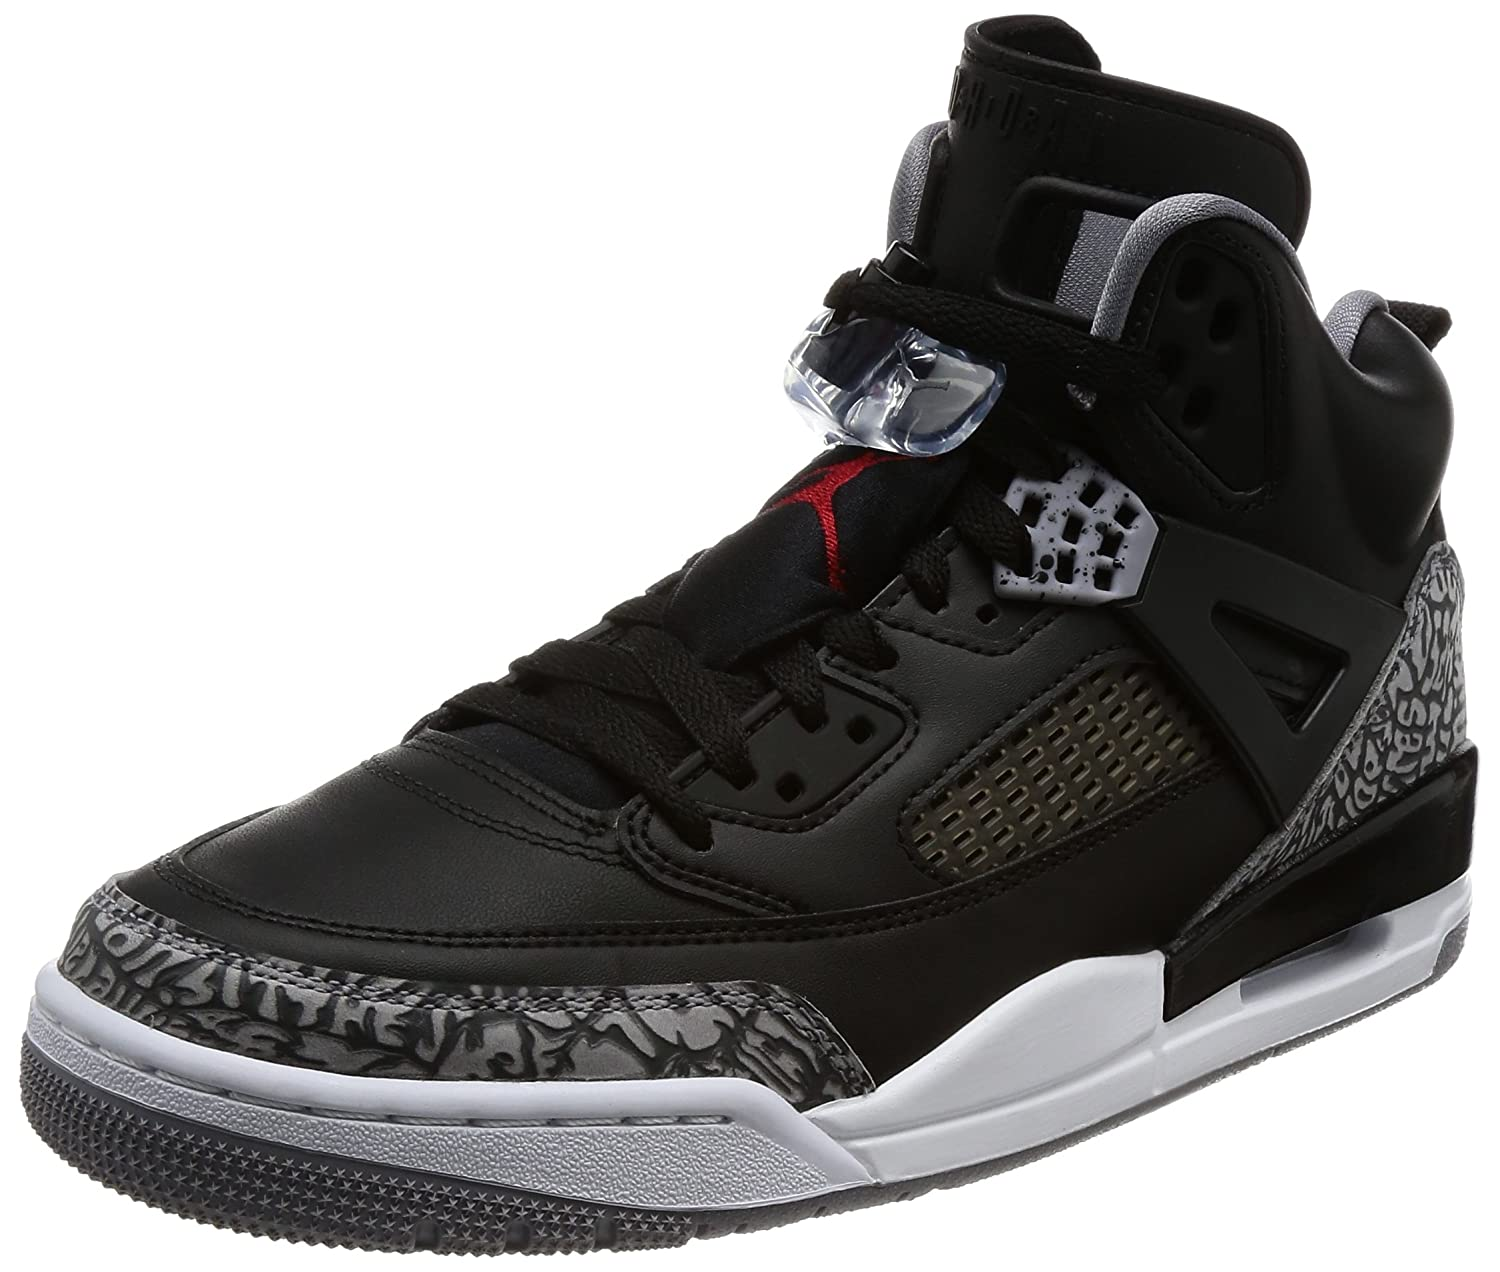 hot sale online 49f31 a24e7 Nike Men s Air Jordan Spizike Black Cement Black White Red (11. 5 D(M) US)   Buy Online at Low Prices in India - Amazon.in